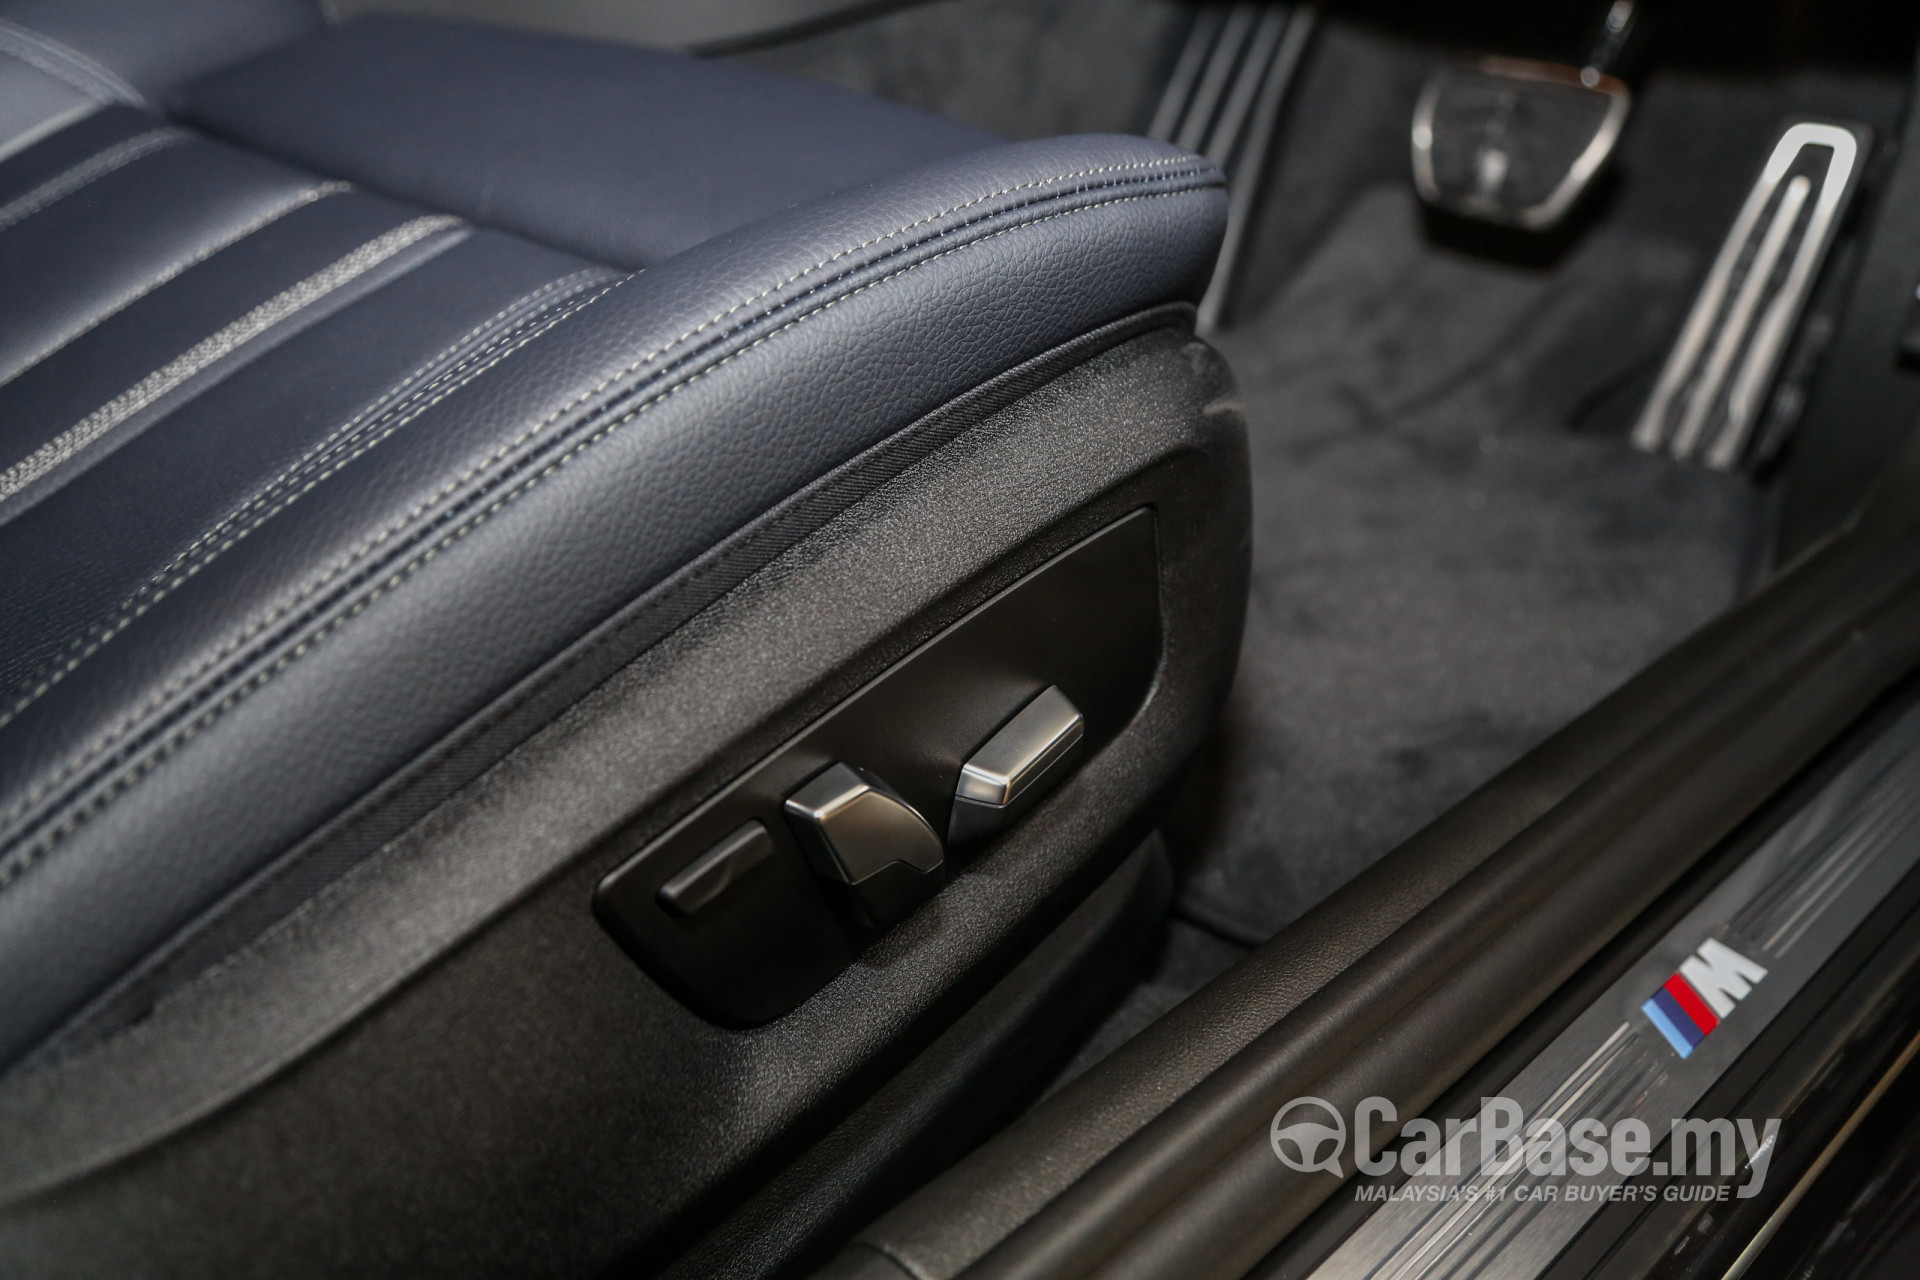 BMW 5 Series G30 (2017) Interior Image #56312 in Malaysia - Reviews